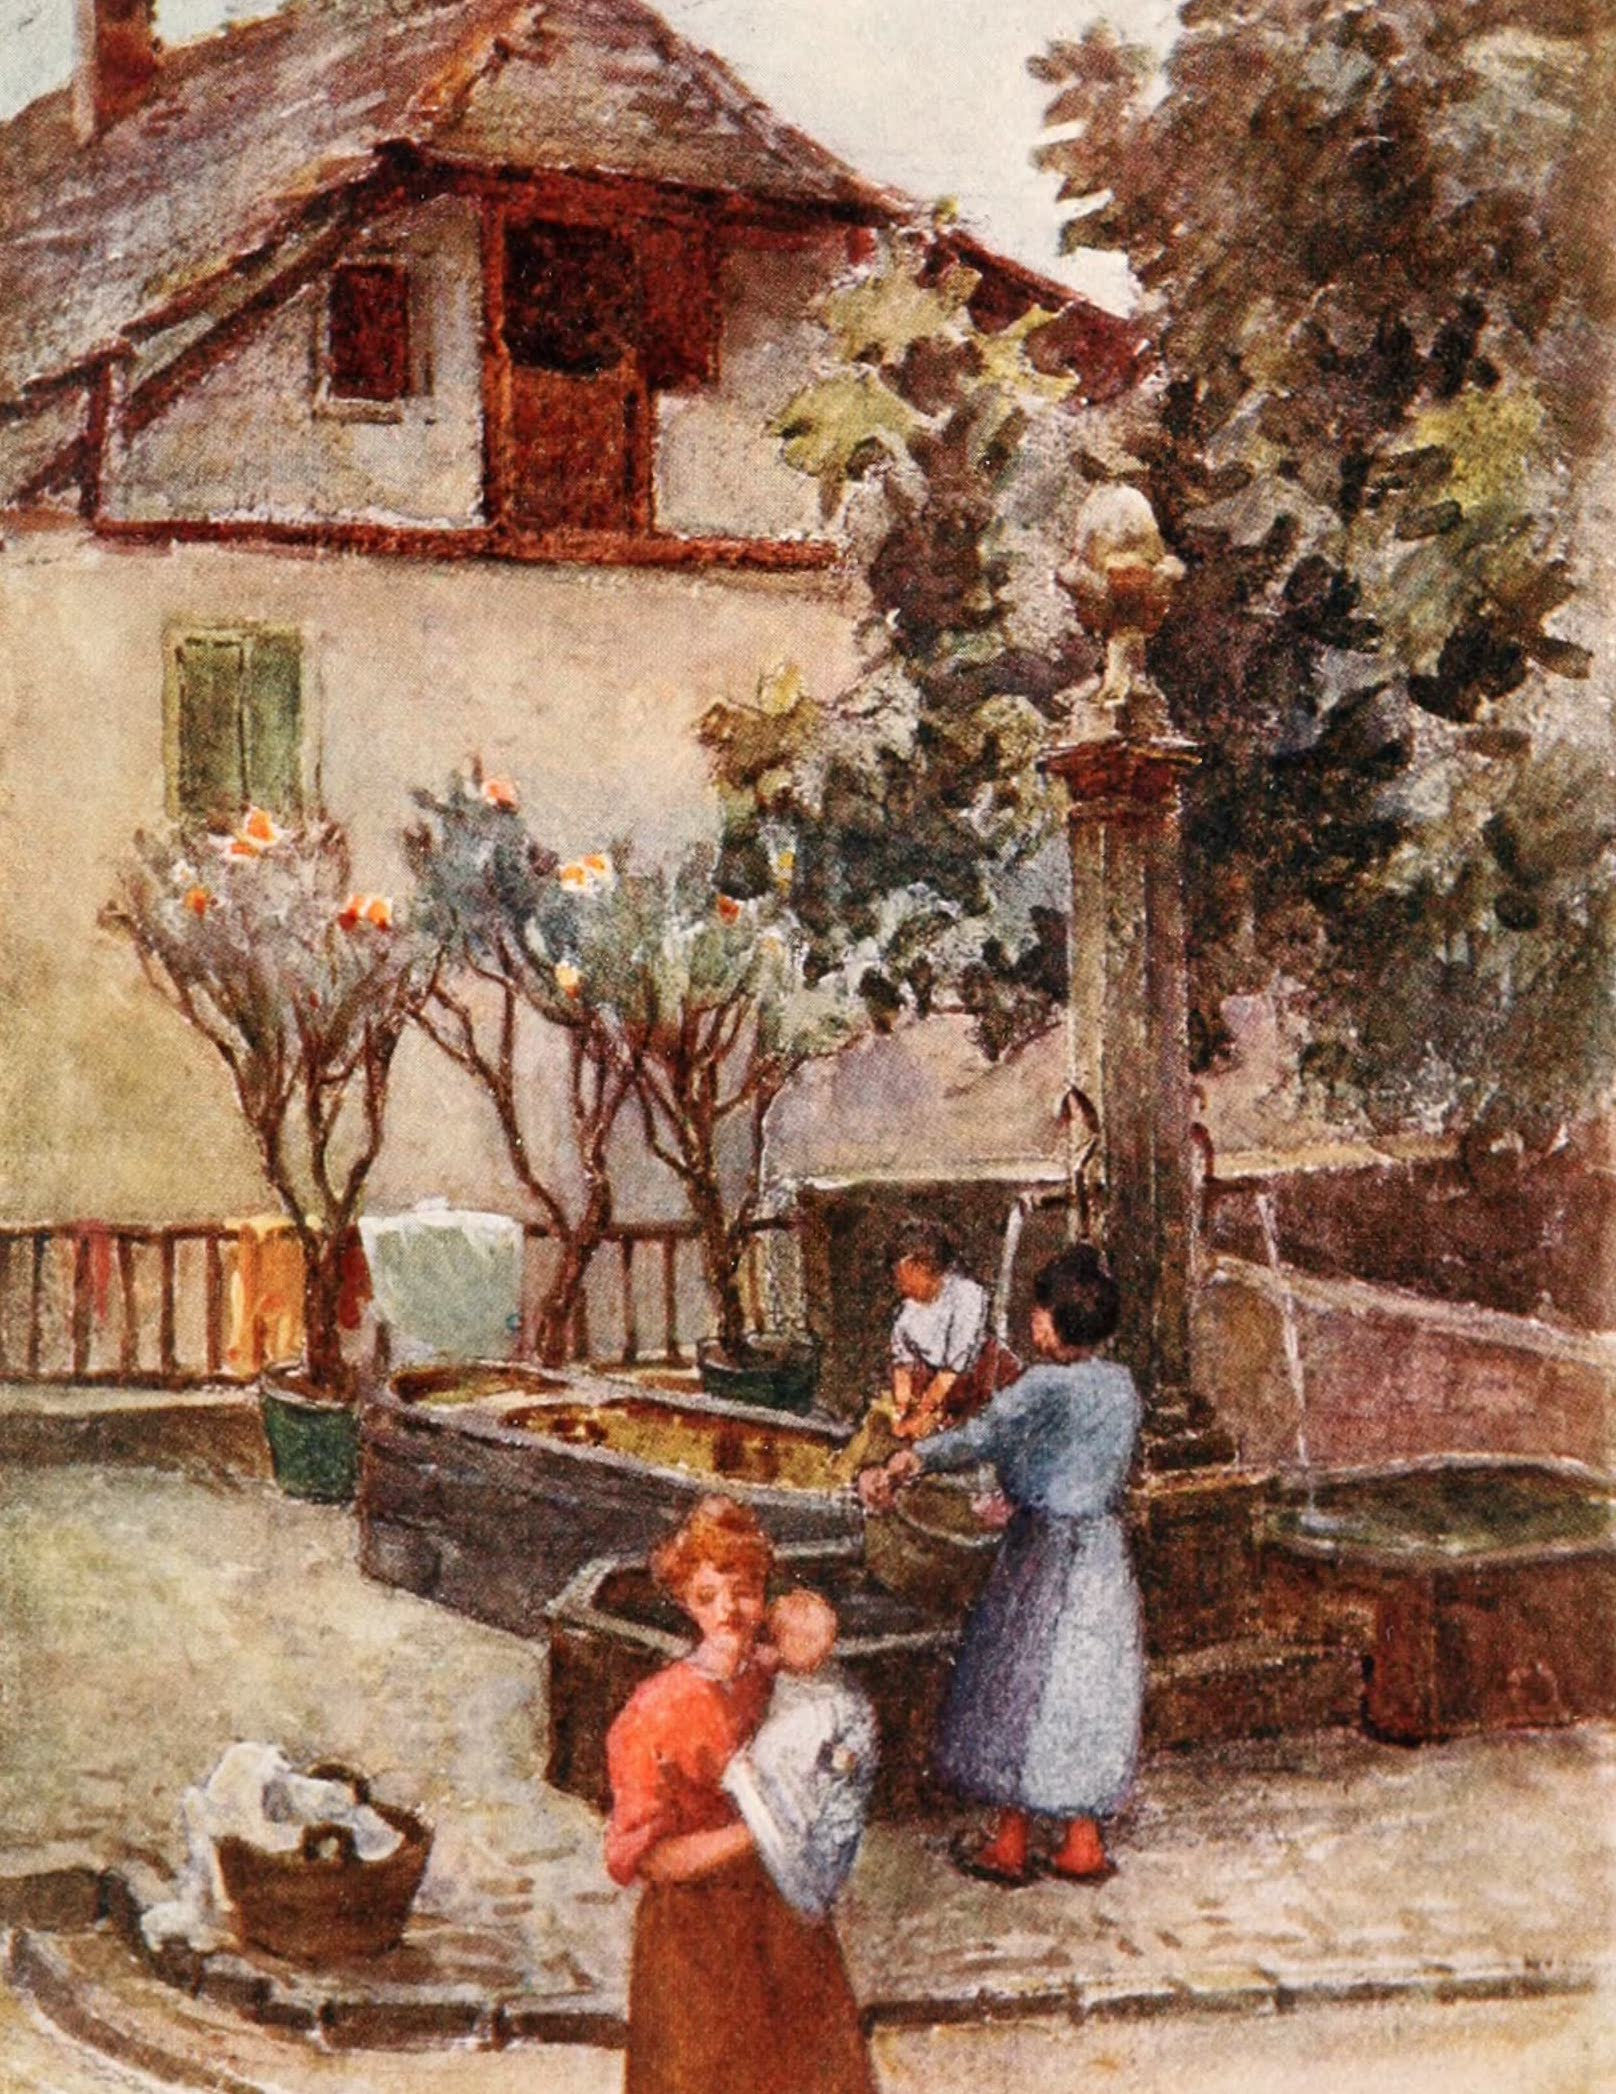 Montreux, Painted and Described - The Fountain in Veytaux Village (1908)